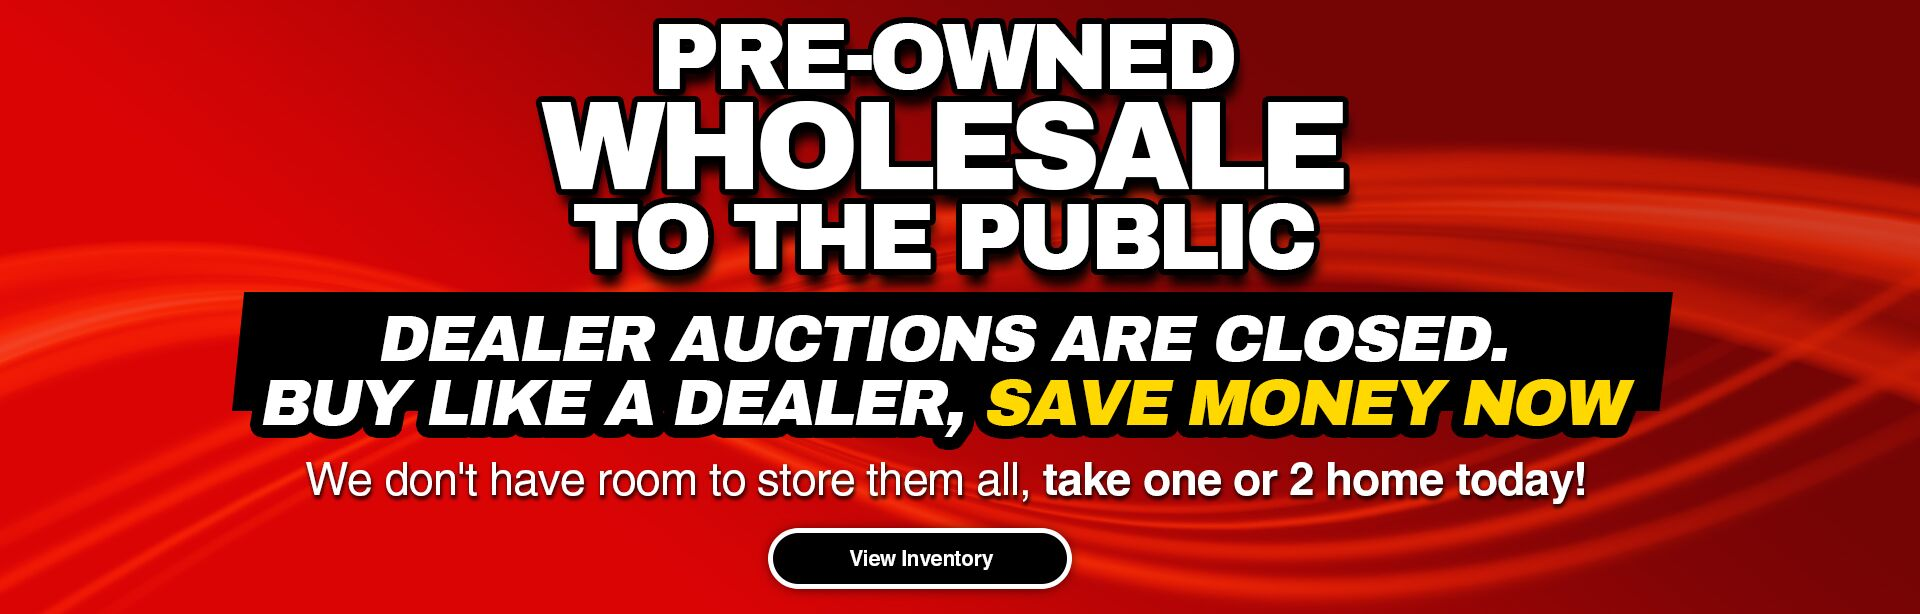 Pre-Owned Wholesale To The Public